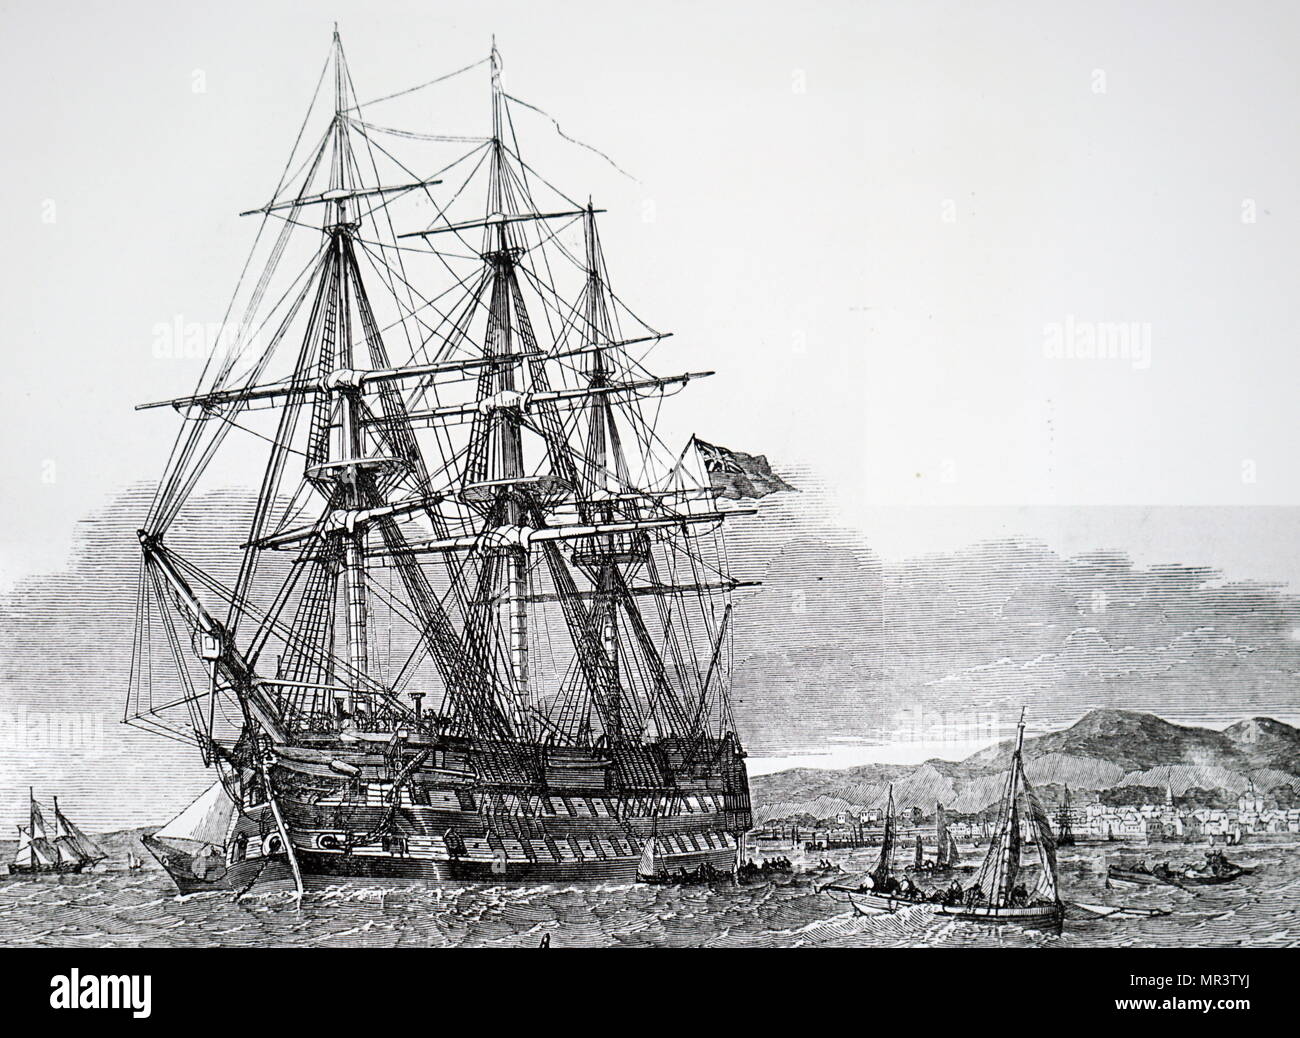 Illustration depicting the H.M.S. Hercules waiting in Campbelton Harbour before sailing for Australia with emigrants from Skye. Dated 19th century - Stock Image